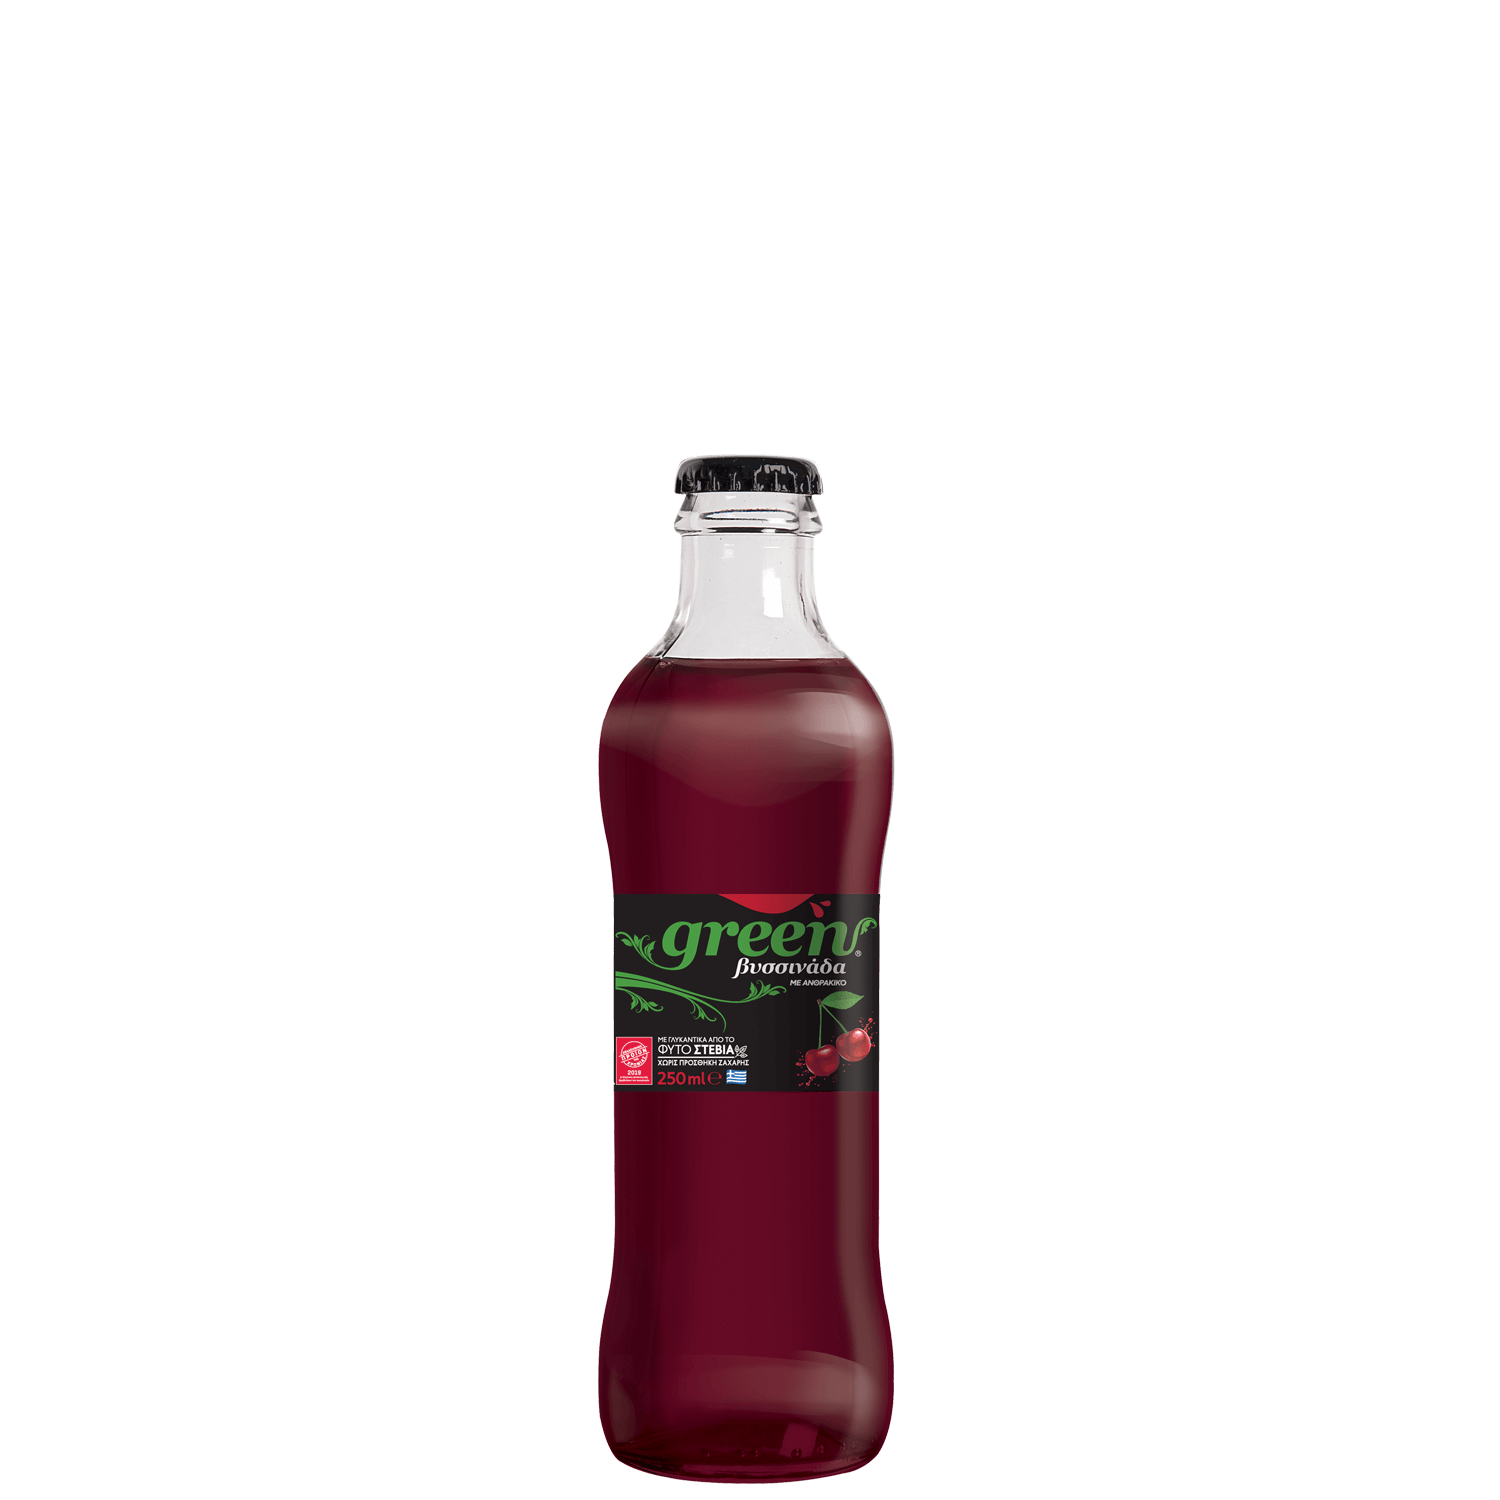 Green Cherry - 250ml - Glass Bottle